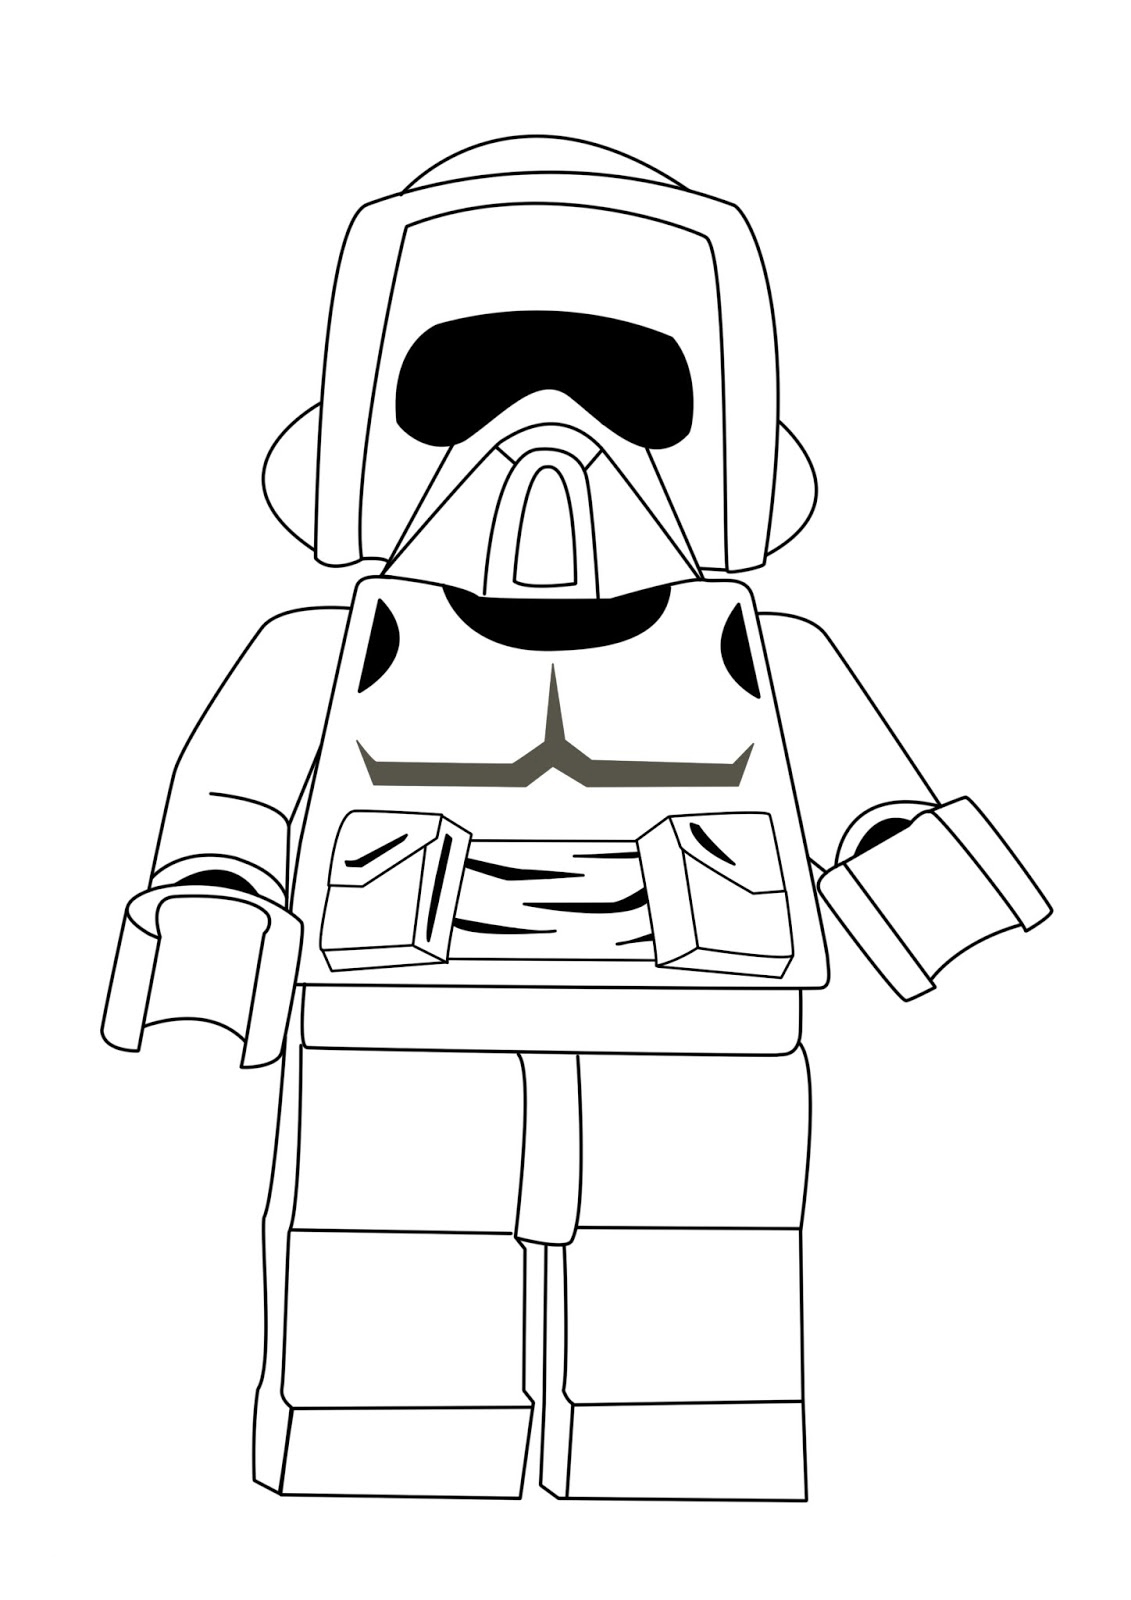 free lego star wars printables star wars free printable coloring pages for adults kids star free wars lego printables